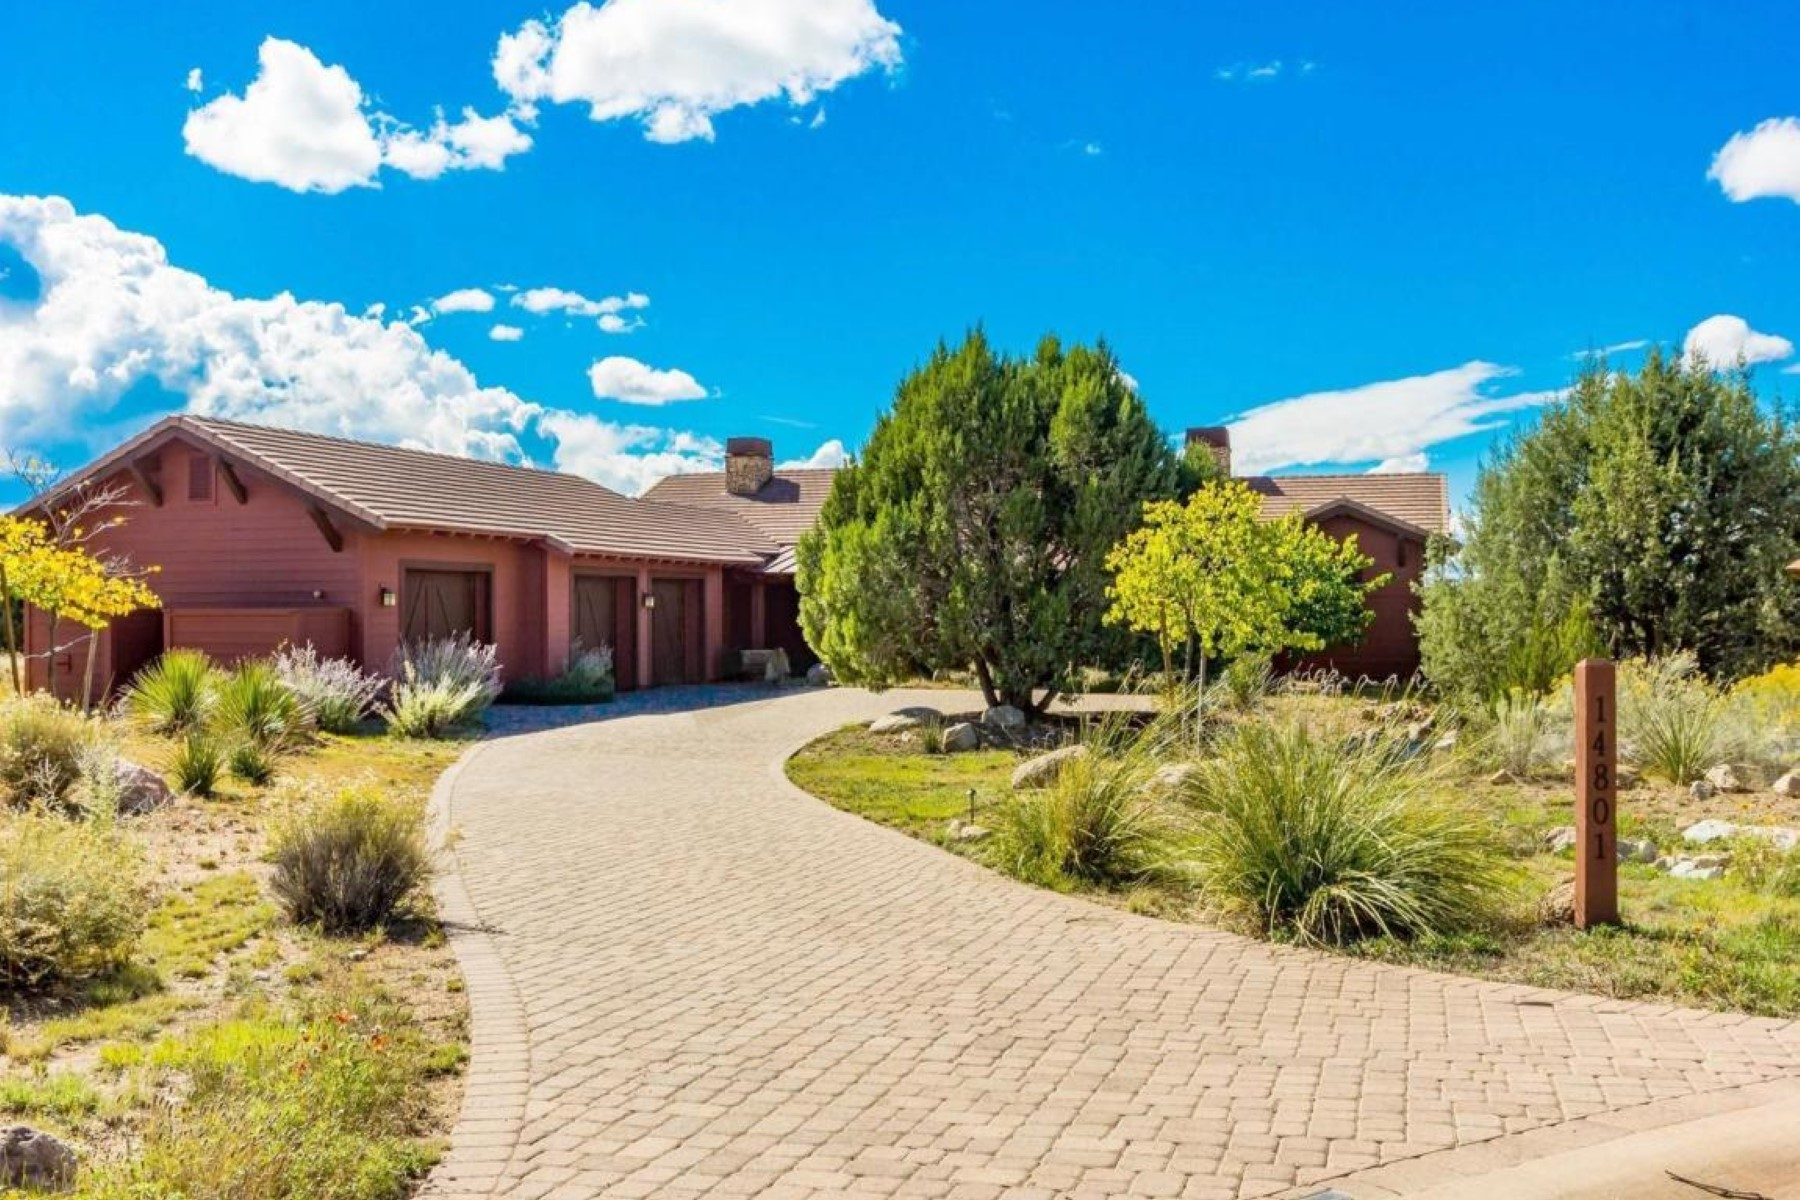 Single Family Home for Sale at Gorgeous Golf Course setting with Panoramic Views 14801 N Dragons Breath Prescott, Arizona, 86305 United States